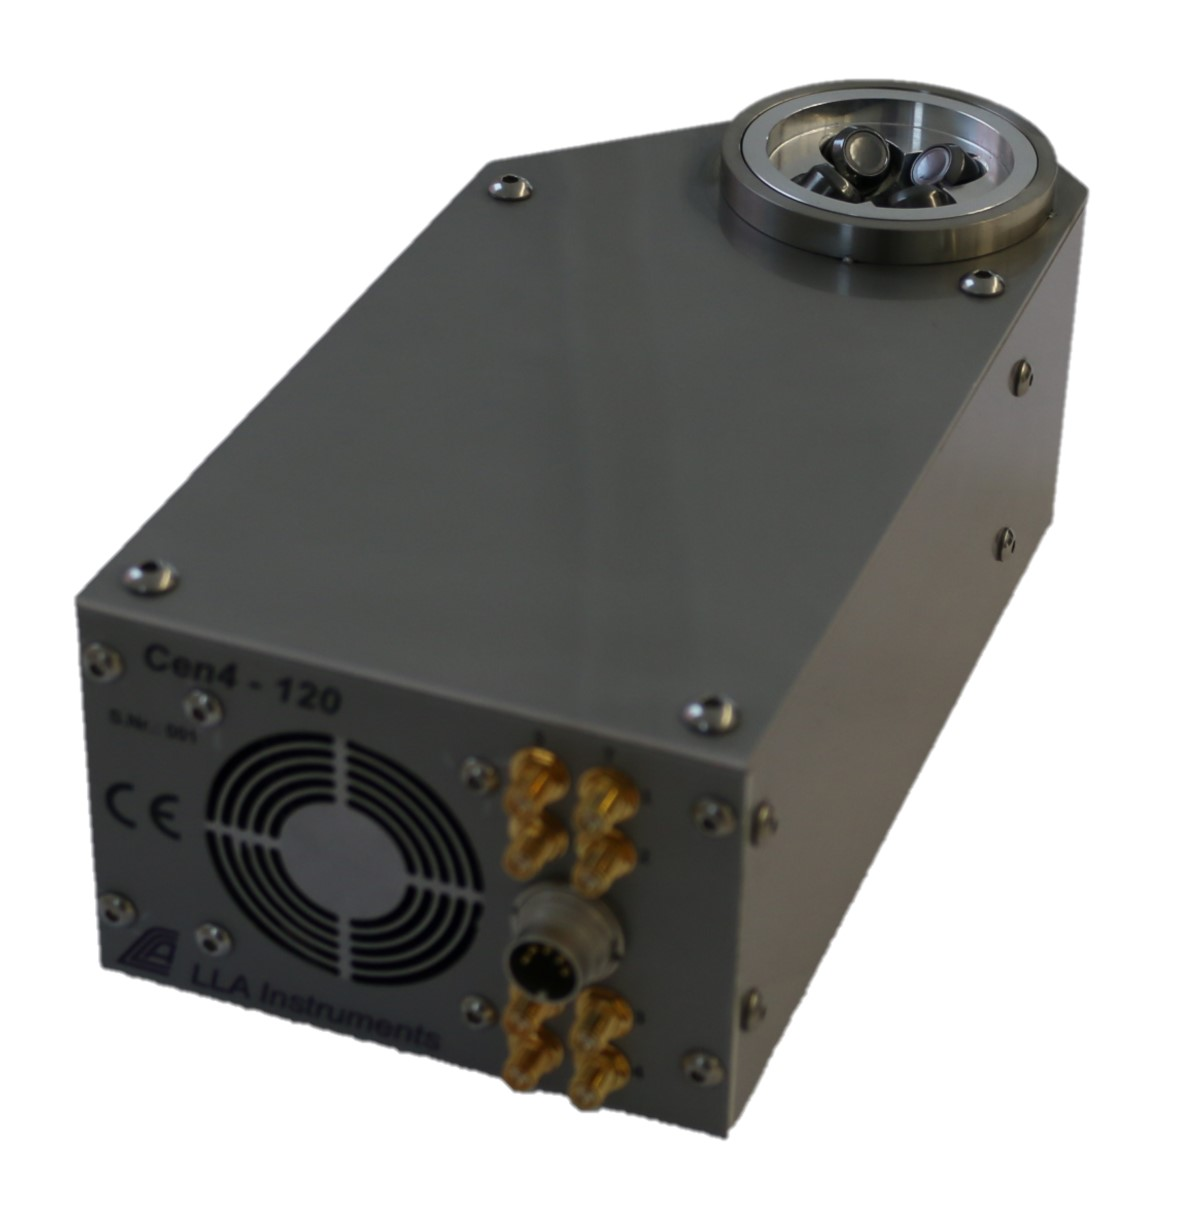 LLA_Cen4 - 4-element X-ray fluorescence detector